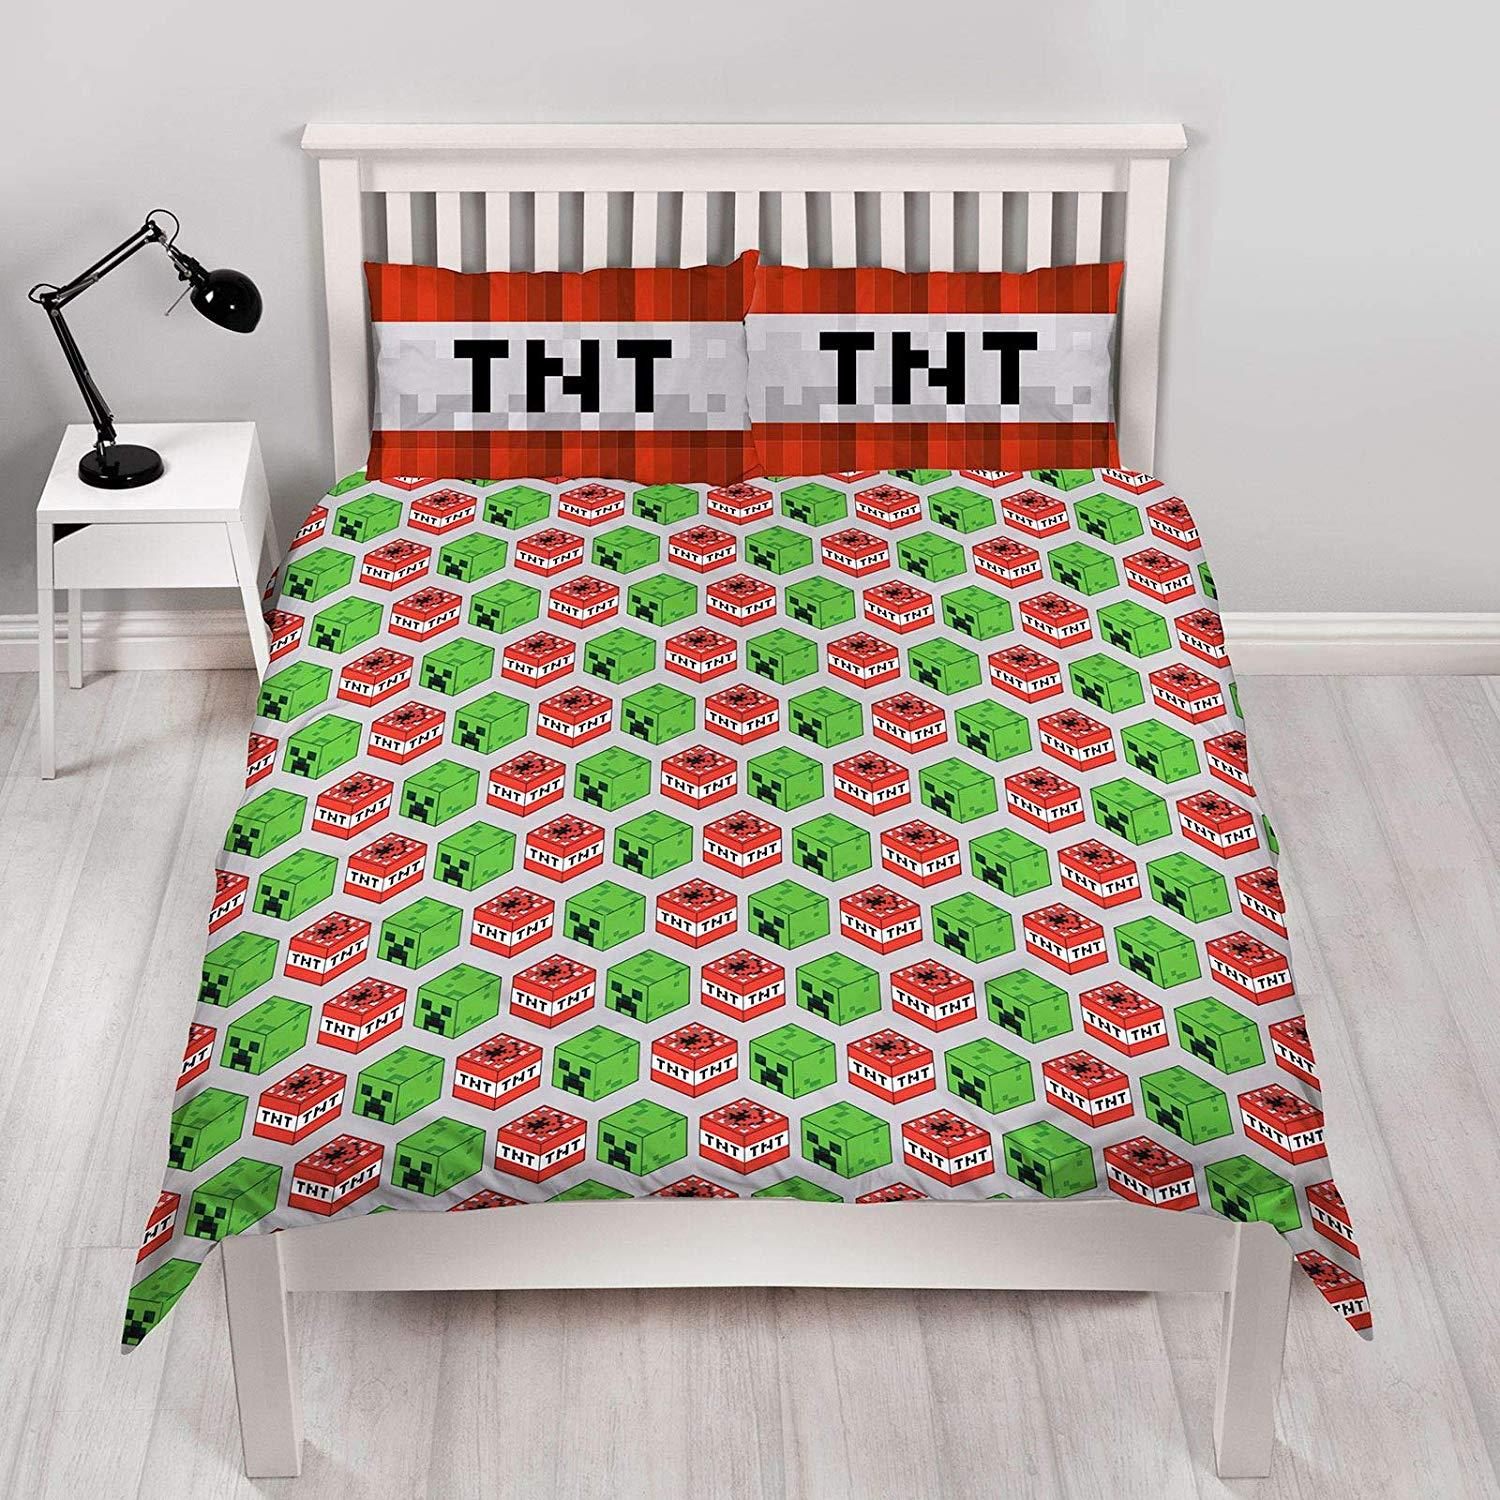 Official-Minecraft-Licensed-Duvet-Covers-Single-Double-Creeper-TNT-Bedding thumbnail 7